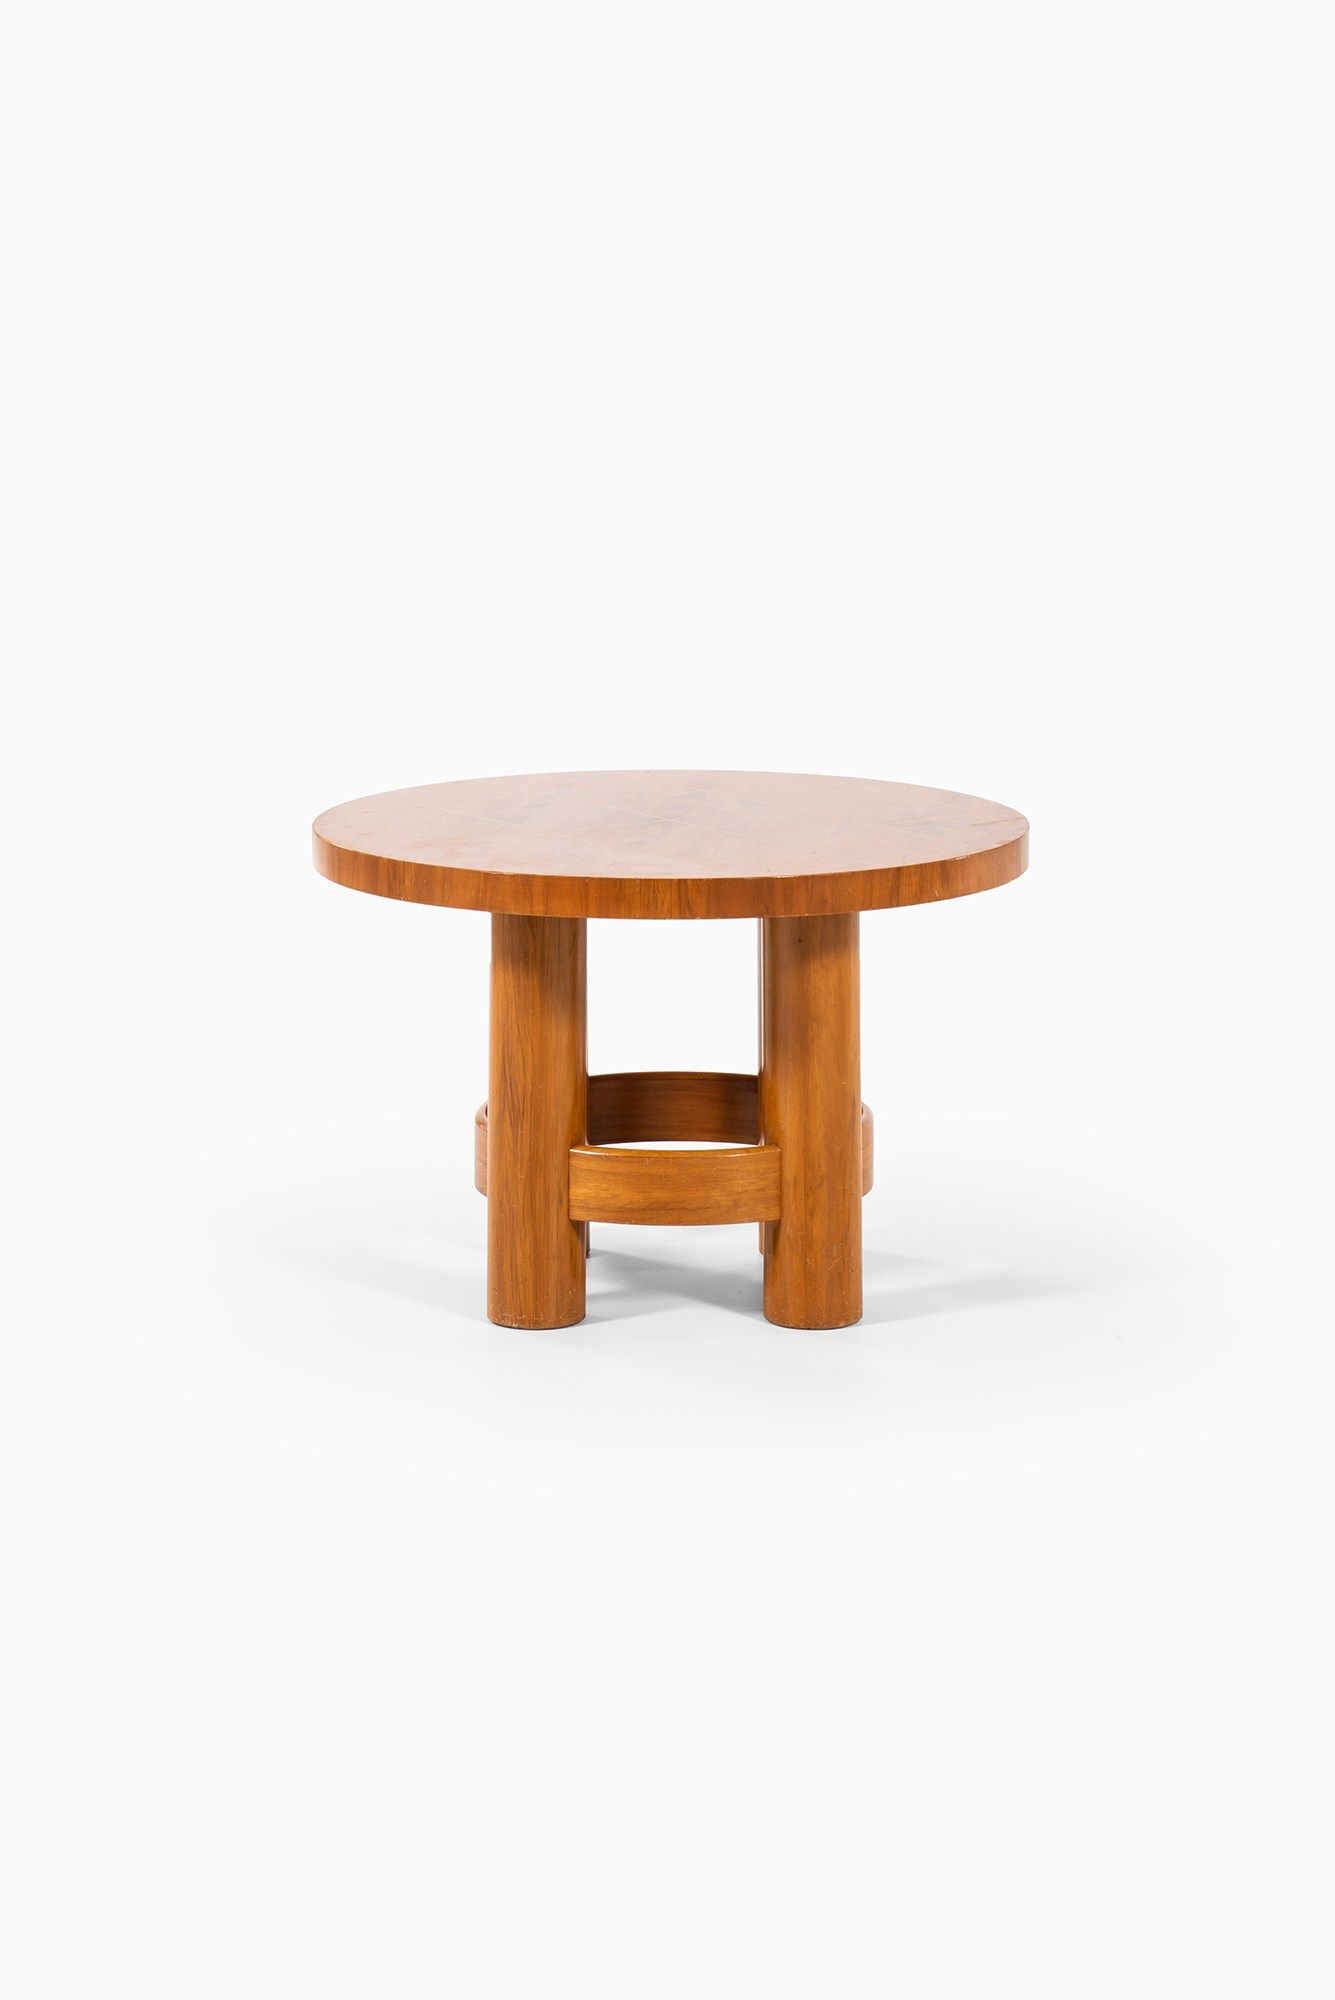 Center Table Studio Schalling Small Round Side Table Side Table Round Side Table [ 2000 x 1335 Pixel ]